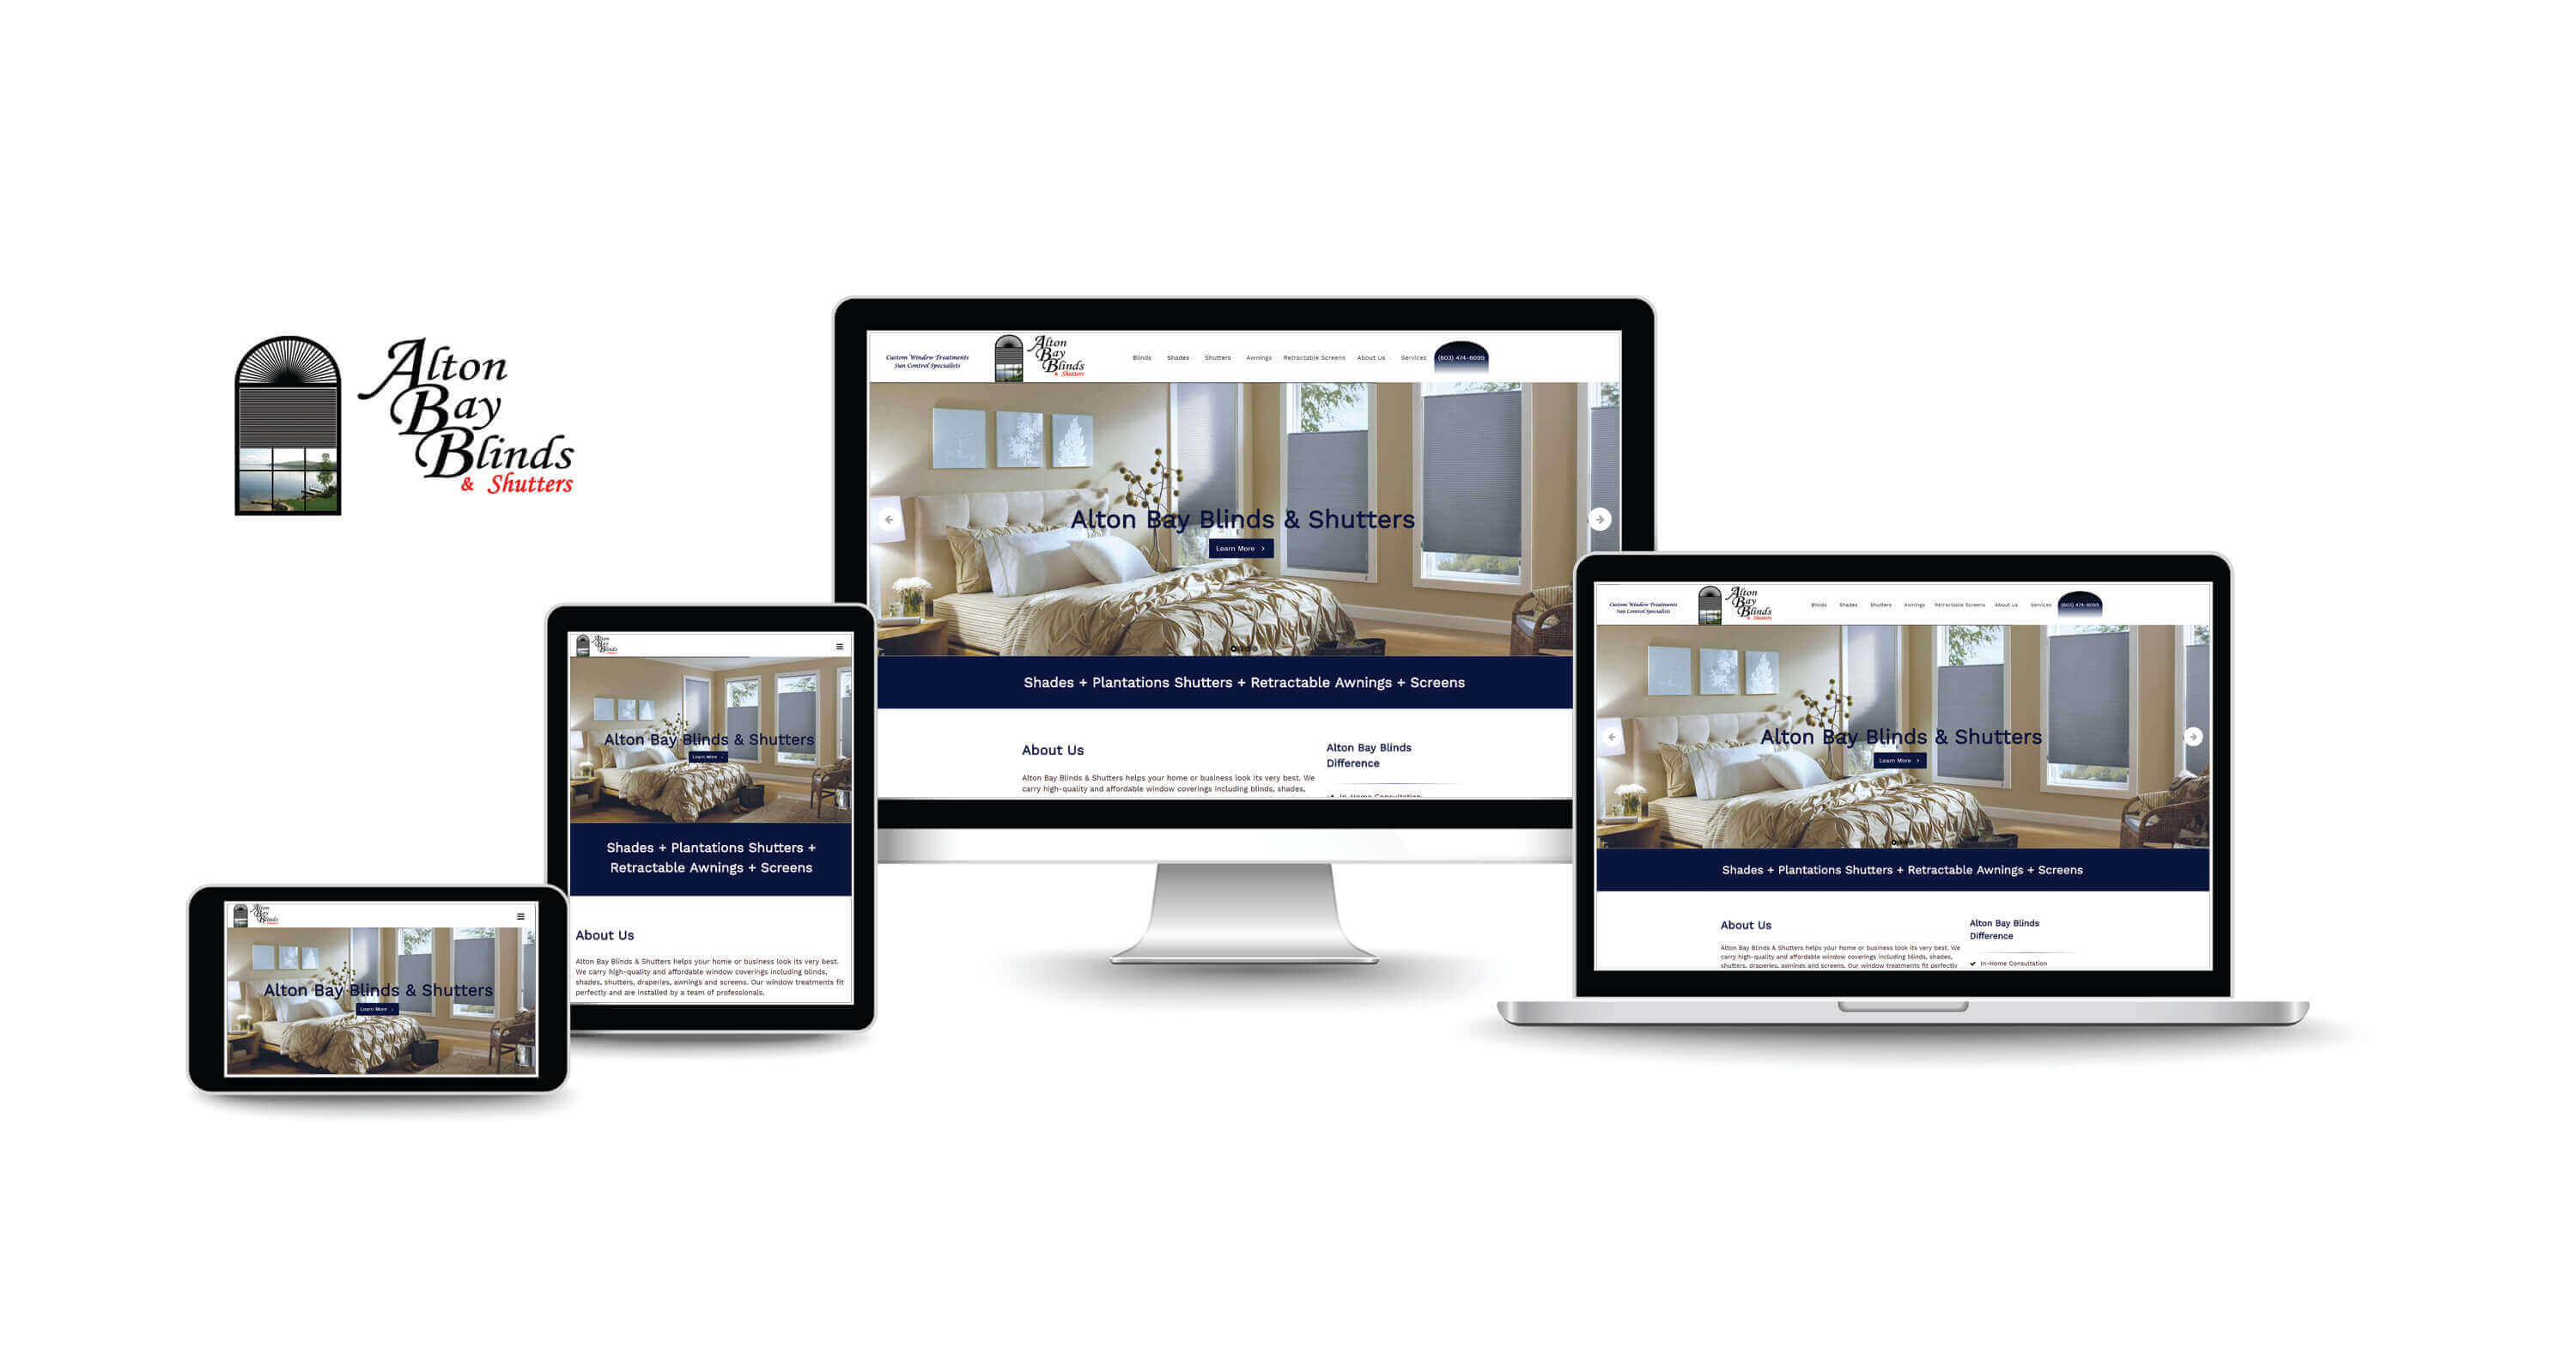 website design and SEO services for retail shops